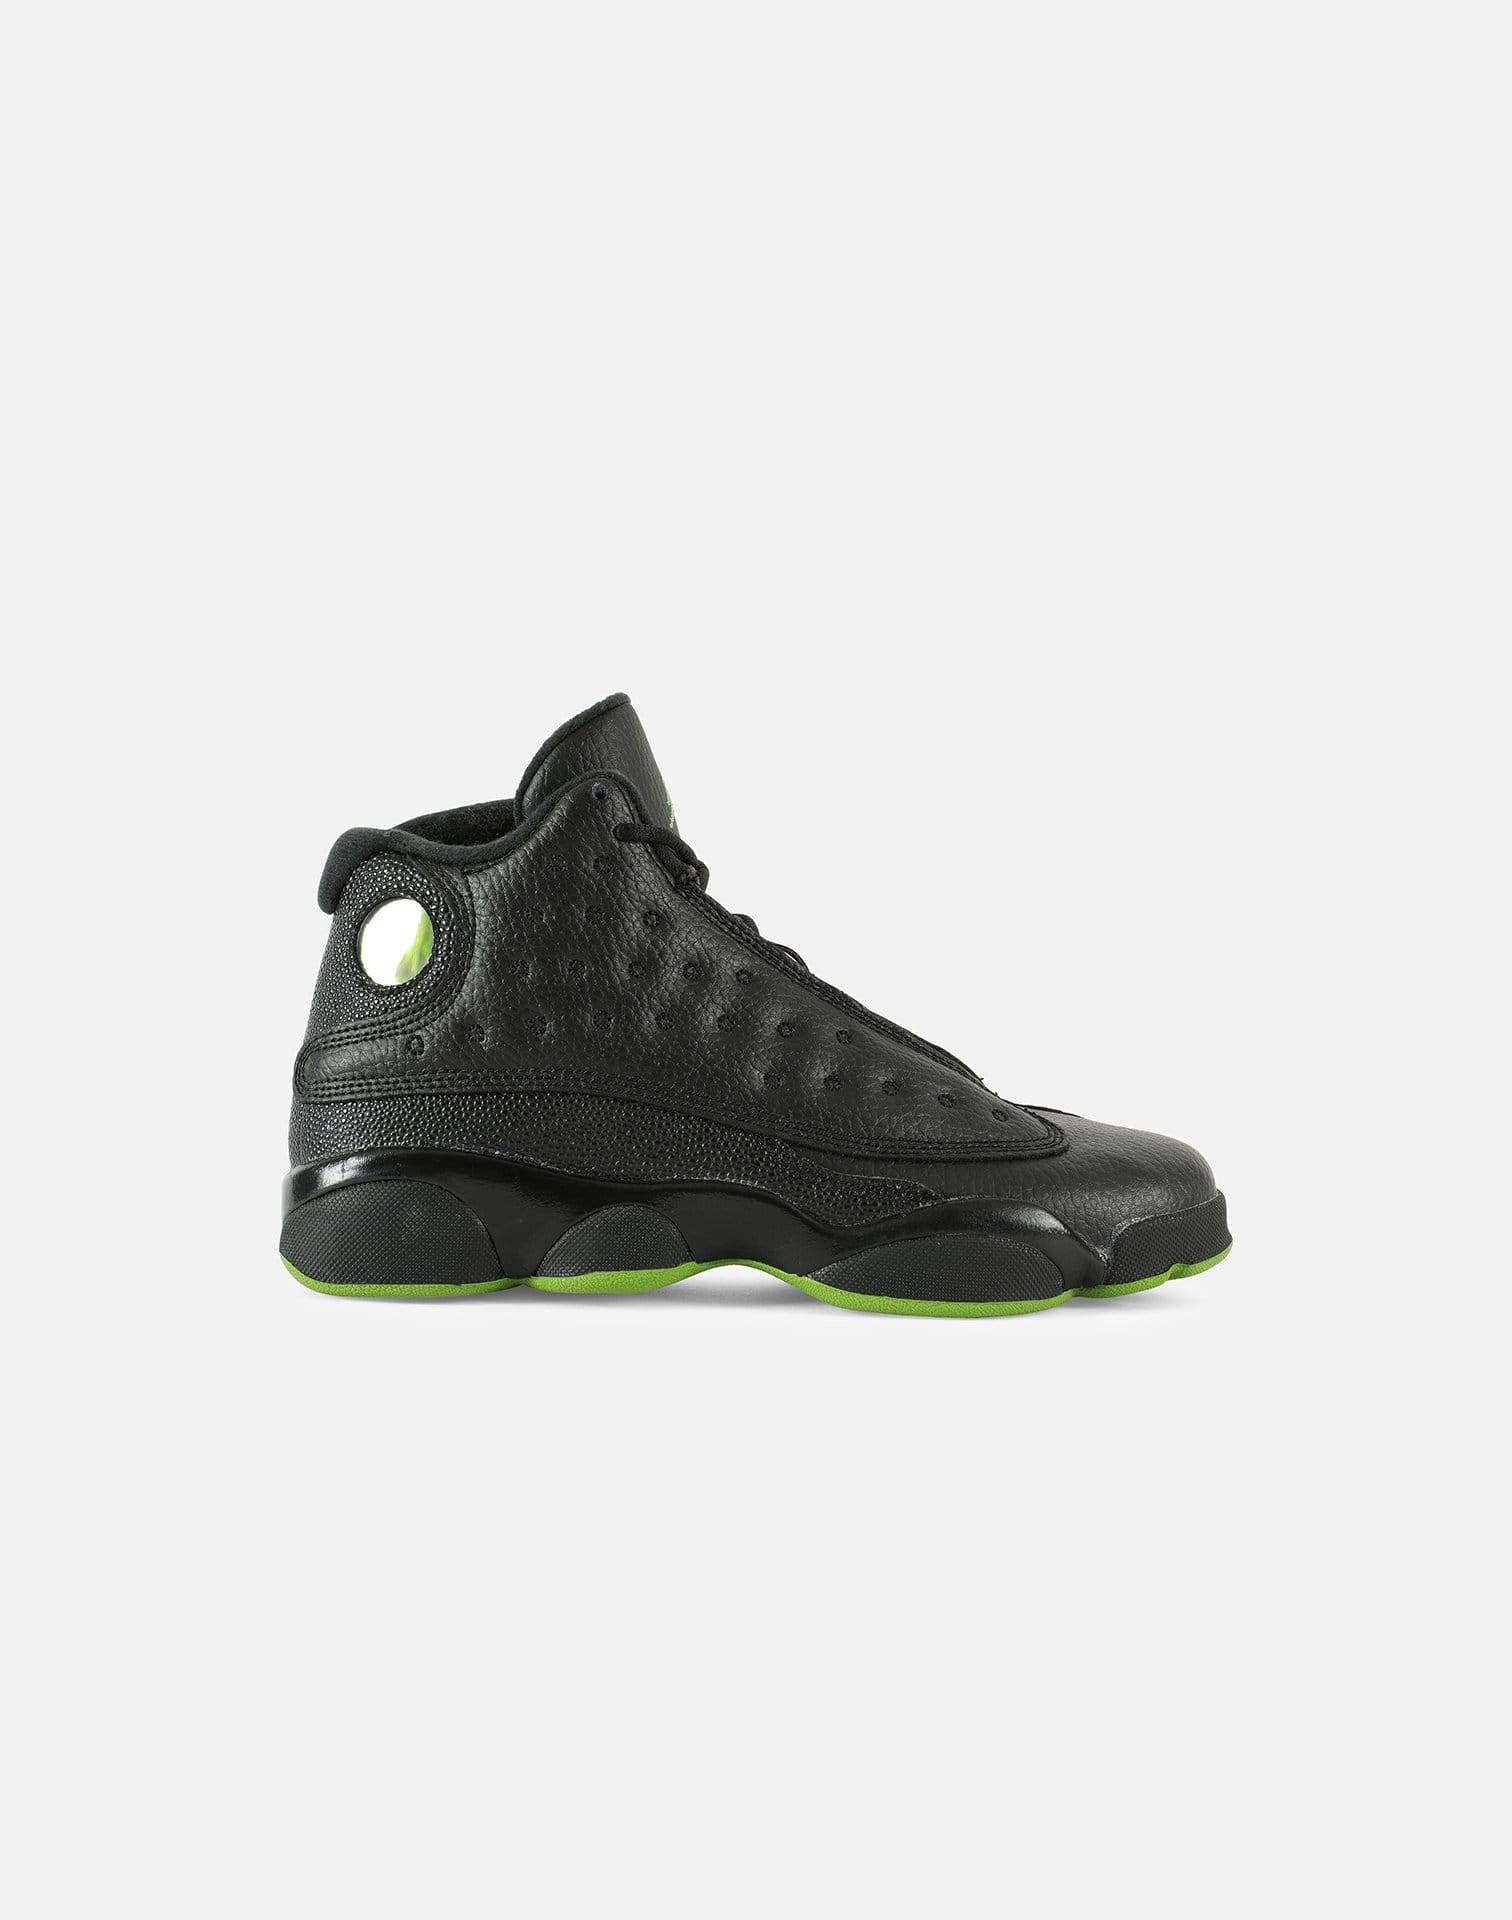 Jordan Air Jordan Retro 13 'Altitude' Grade-School